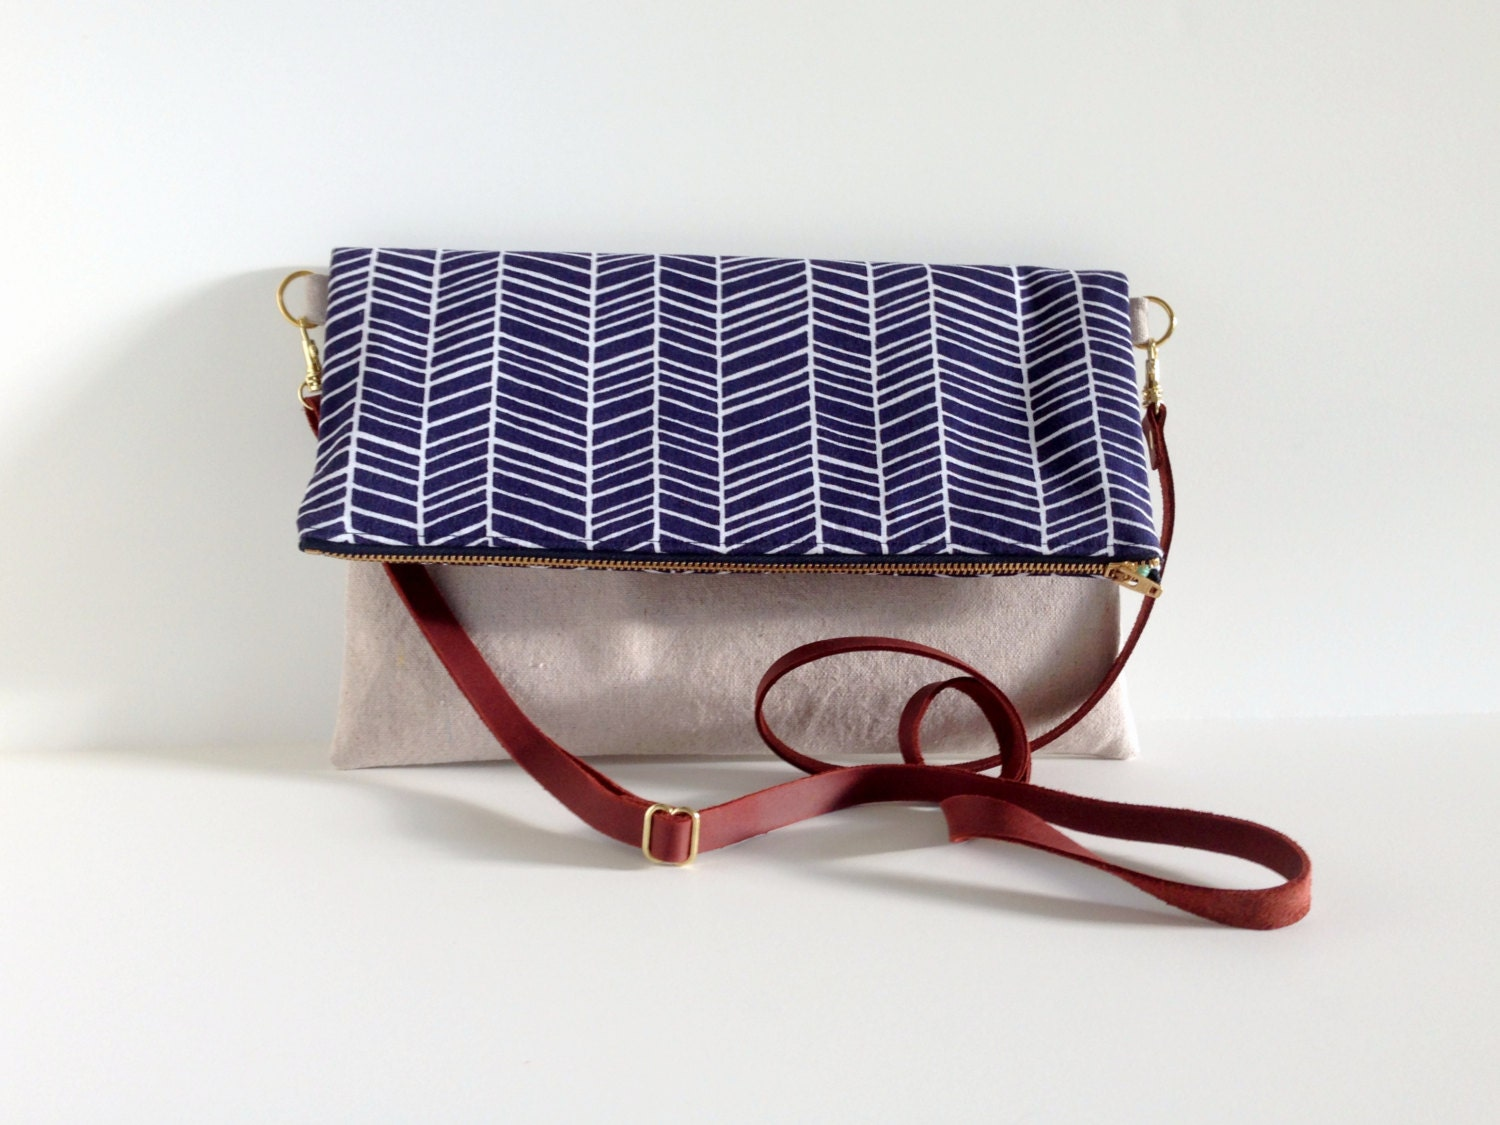 https://www.etsy.com/listing/169898893/foldover-clutch-crossbody-bag-fold-over